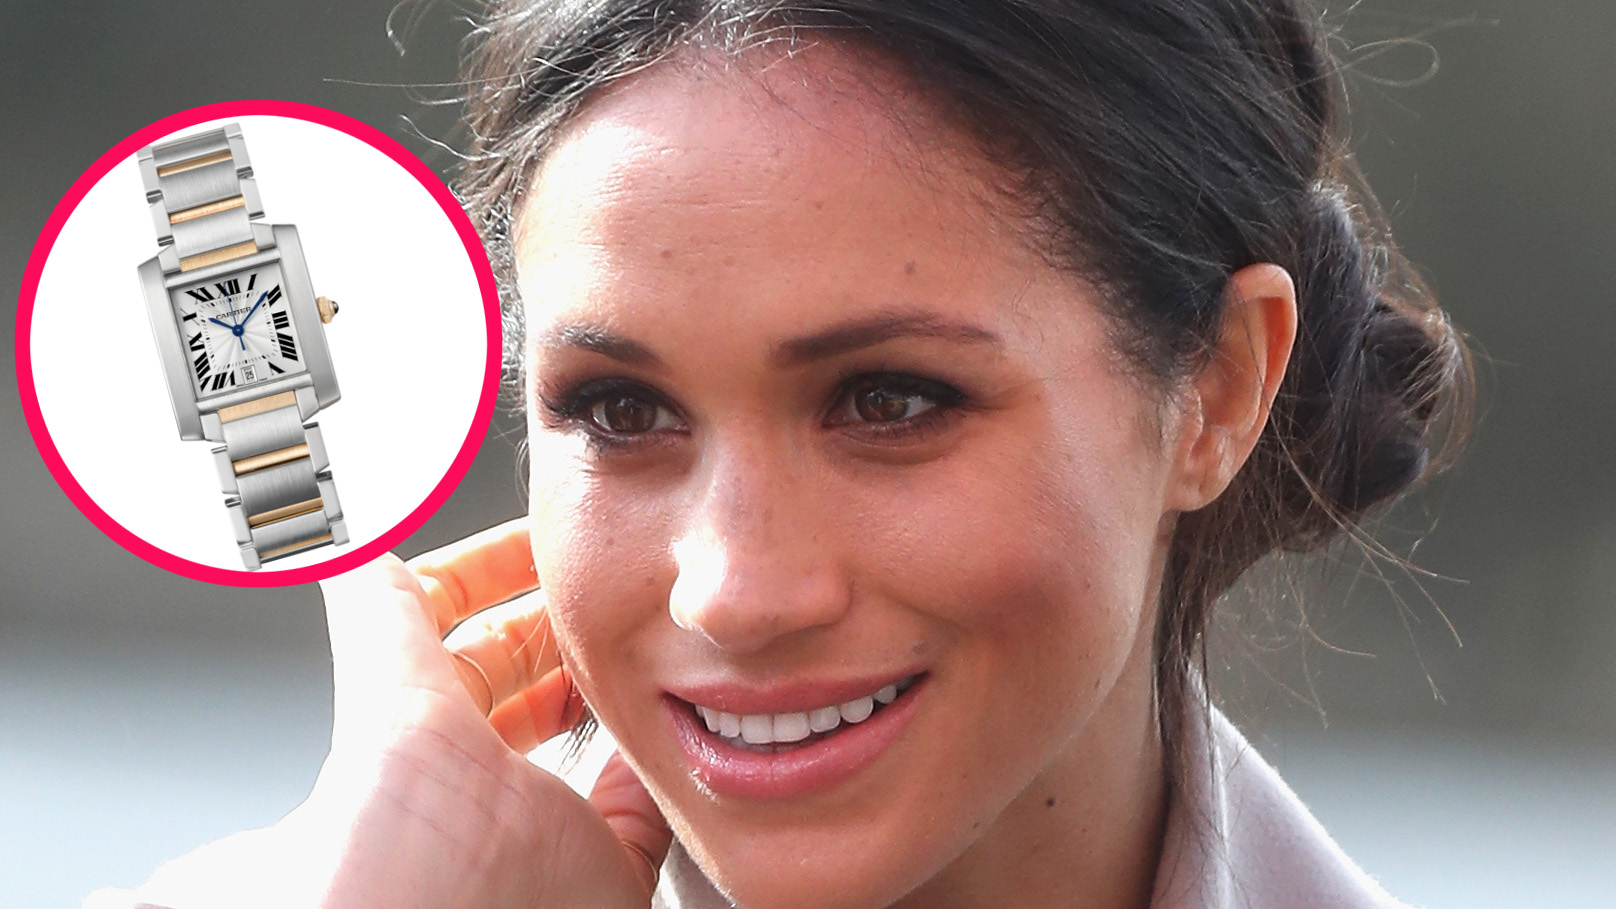 meghan markle s cartier french tank watch has a special message engraved on it https www closerweekly com posts meghan markle cartier french tank watch 161069